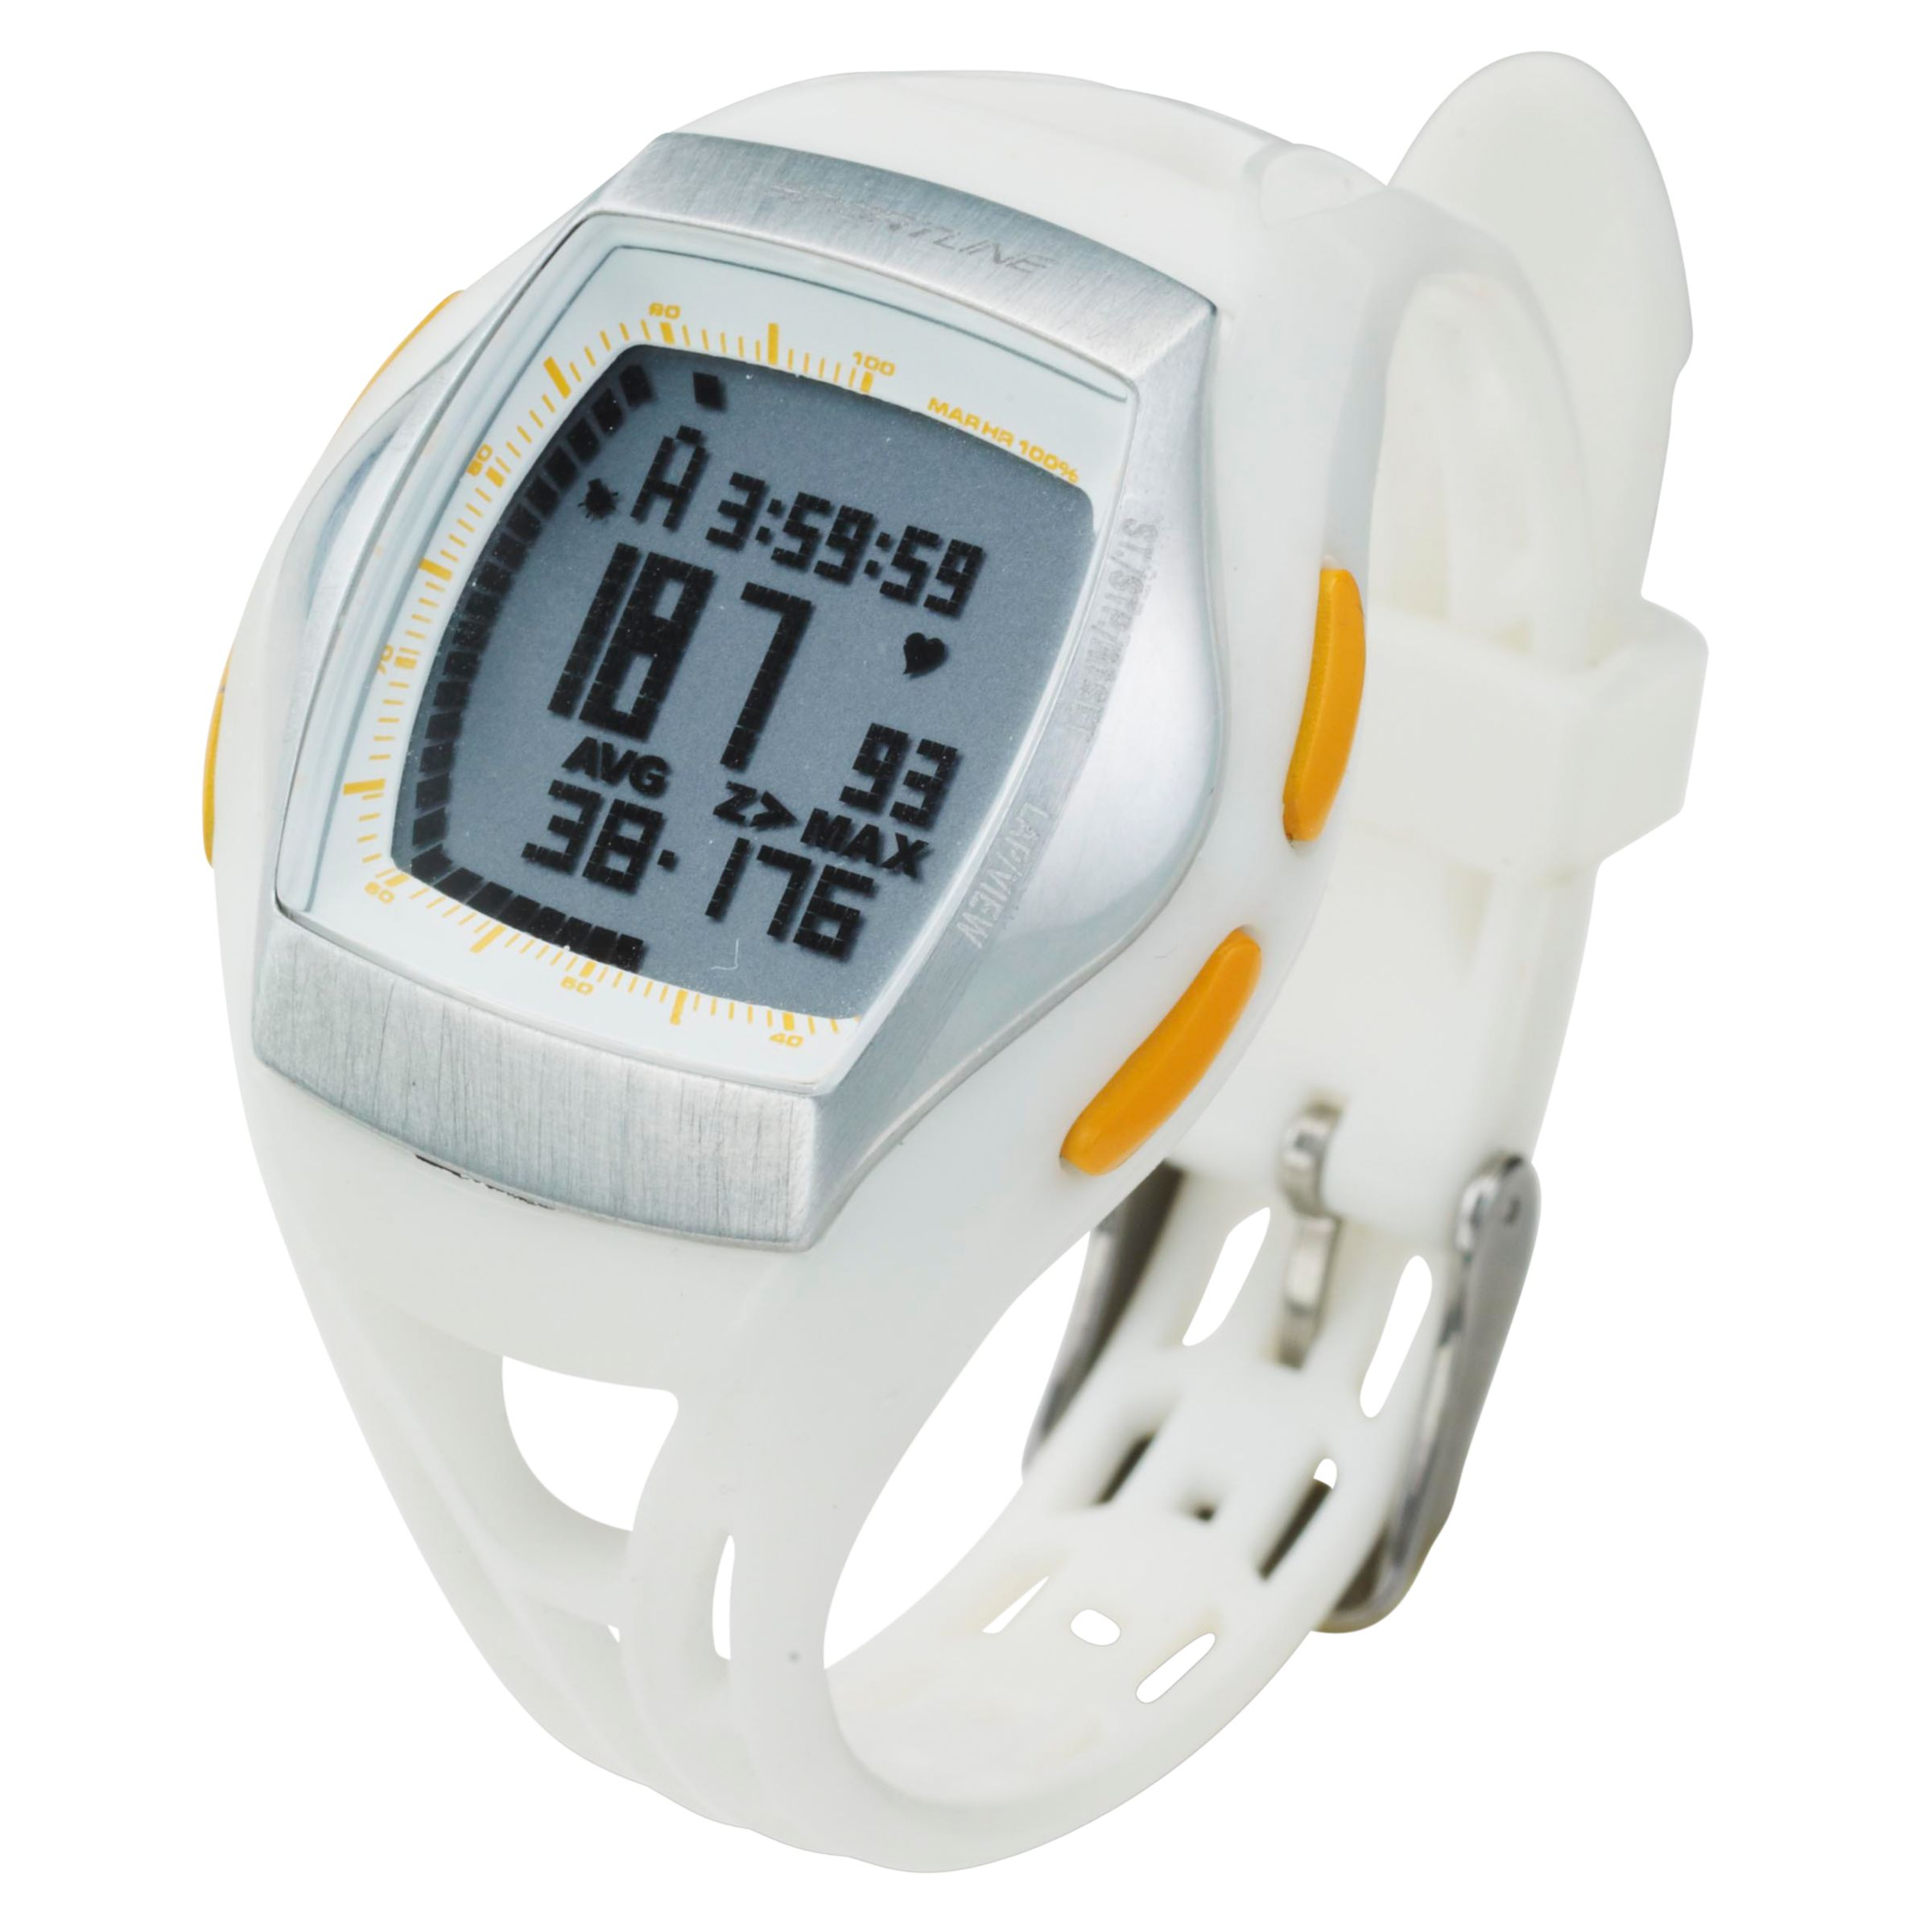 Sportline 1060 Duo Heart Rate Watch